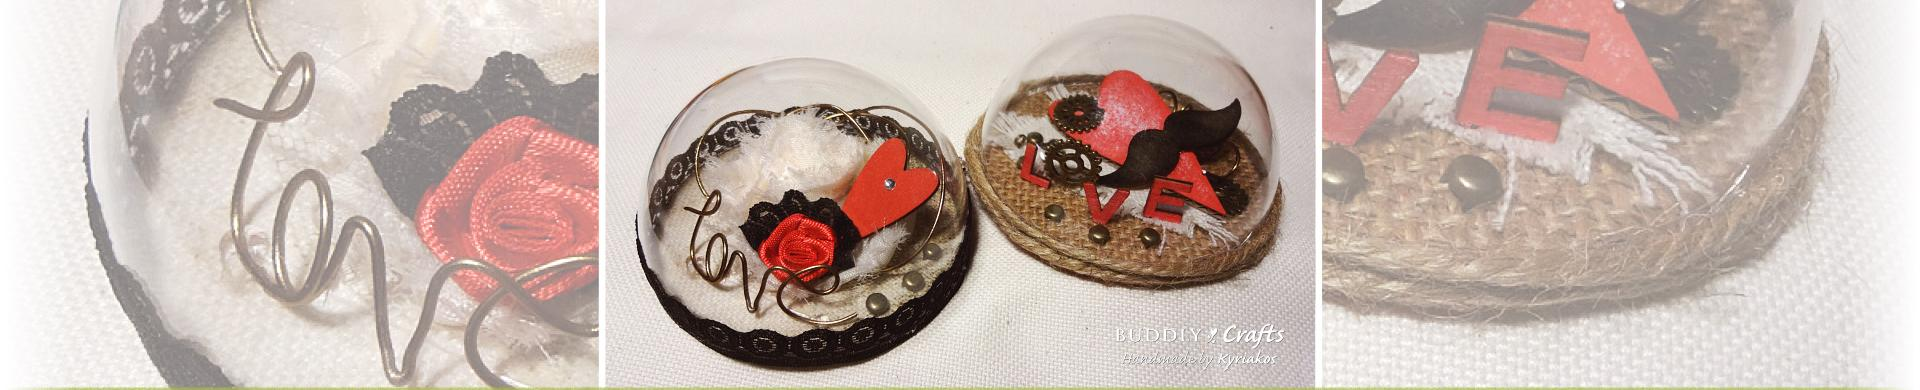 Valentine Keepsake Memory Domes to Make